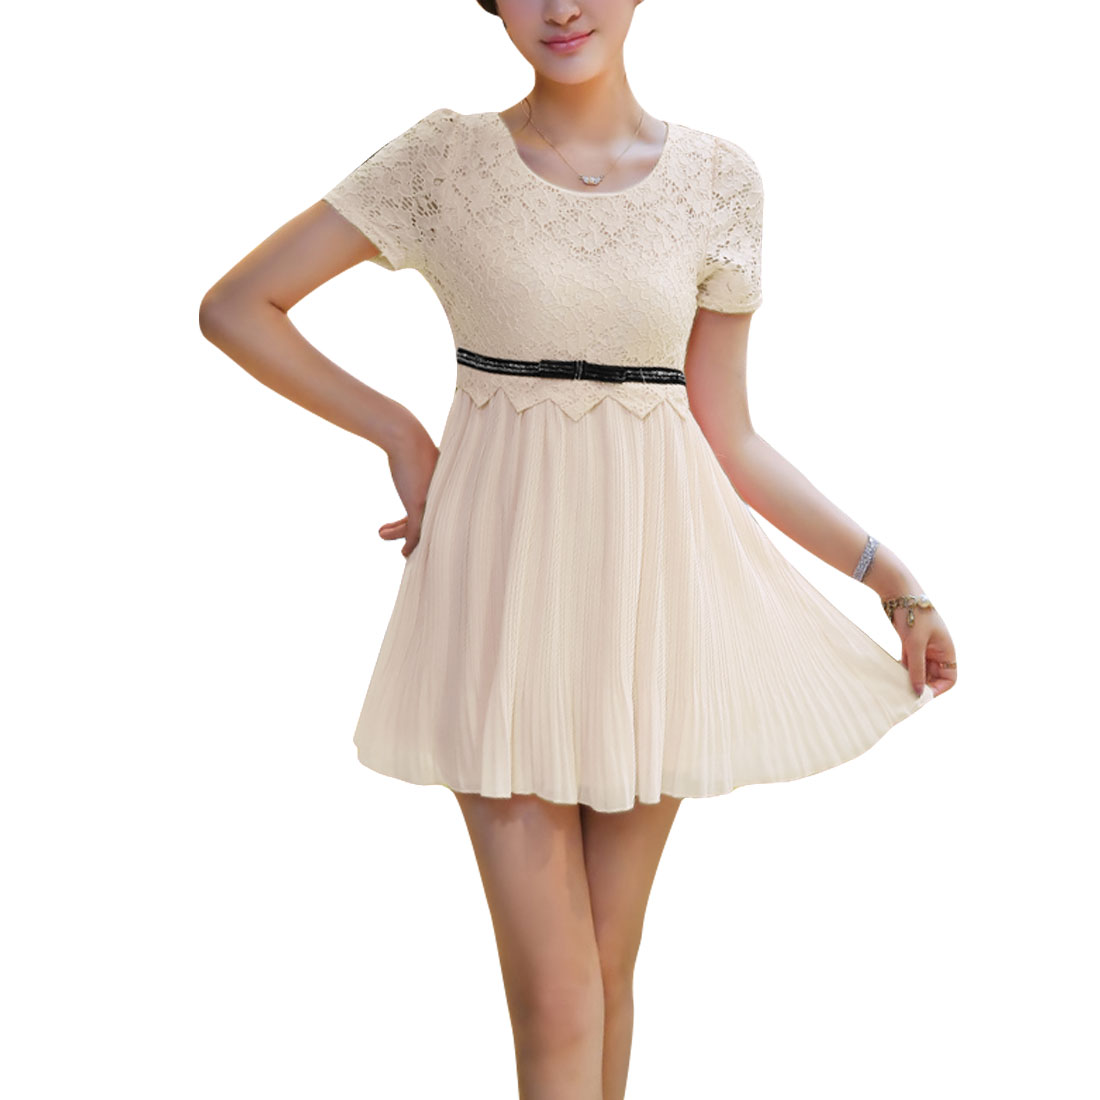 Ladies Short Sleeves Lace Round Neck Stretchy Pleated Dress Apricot S